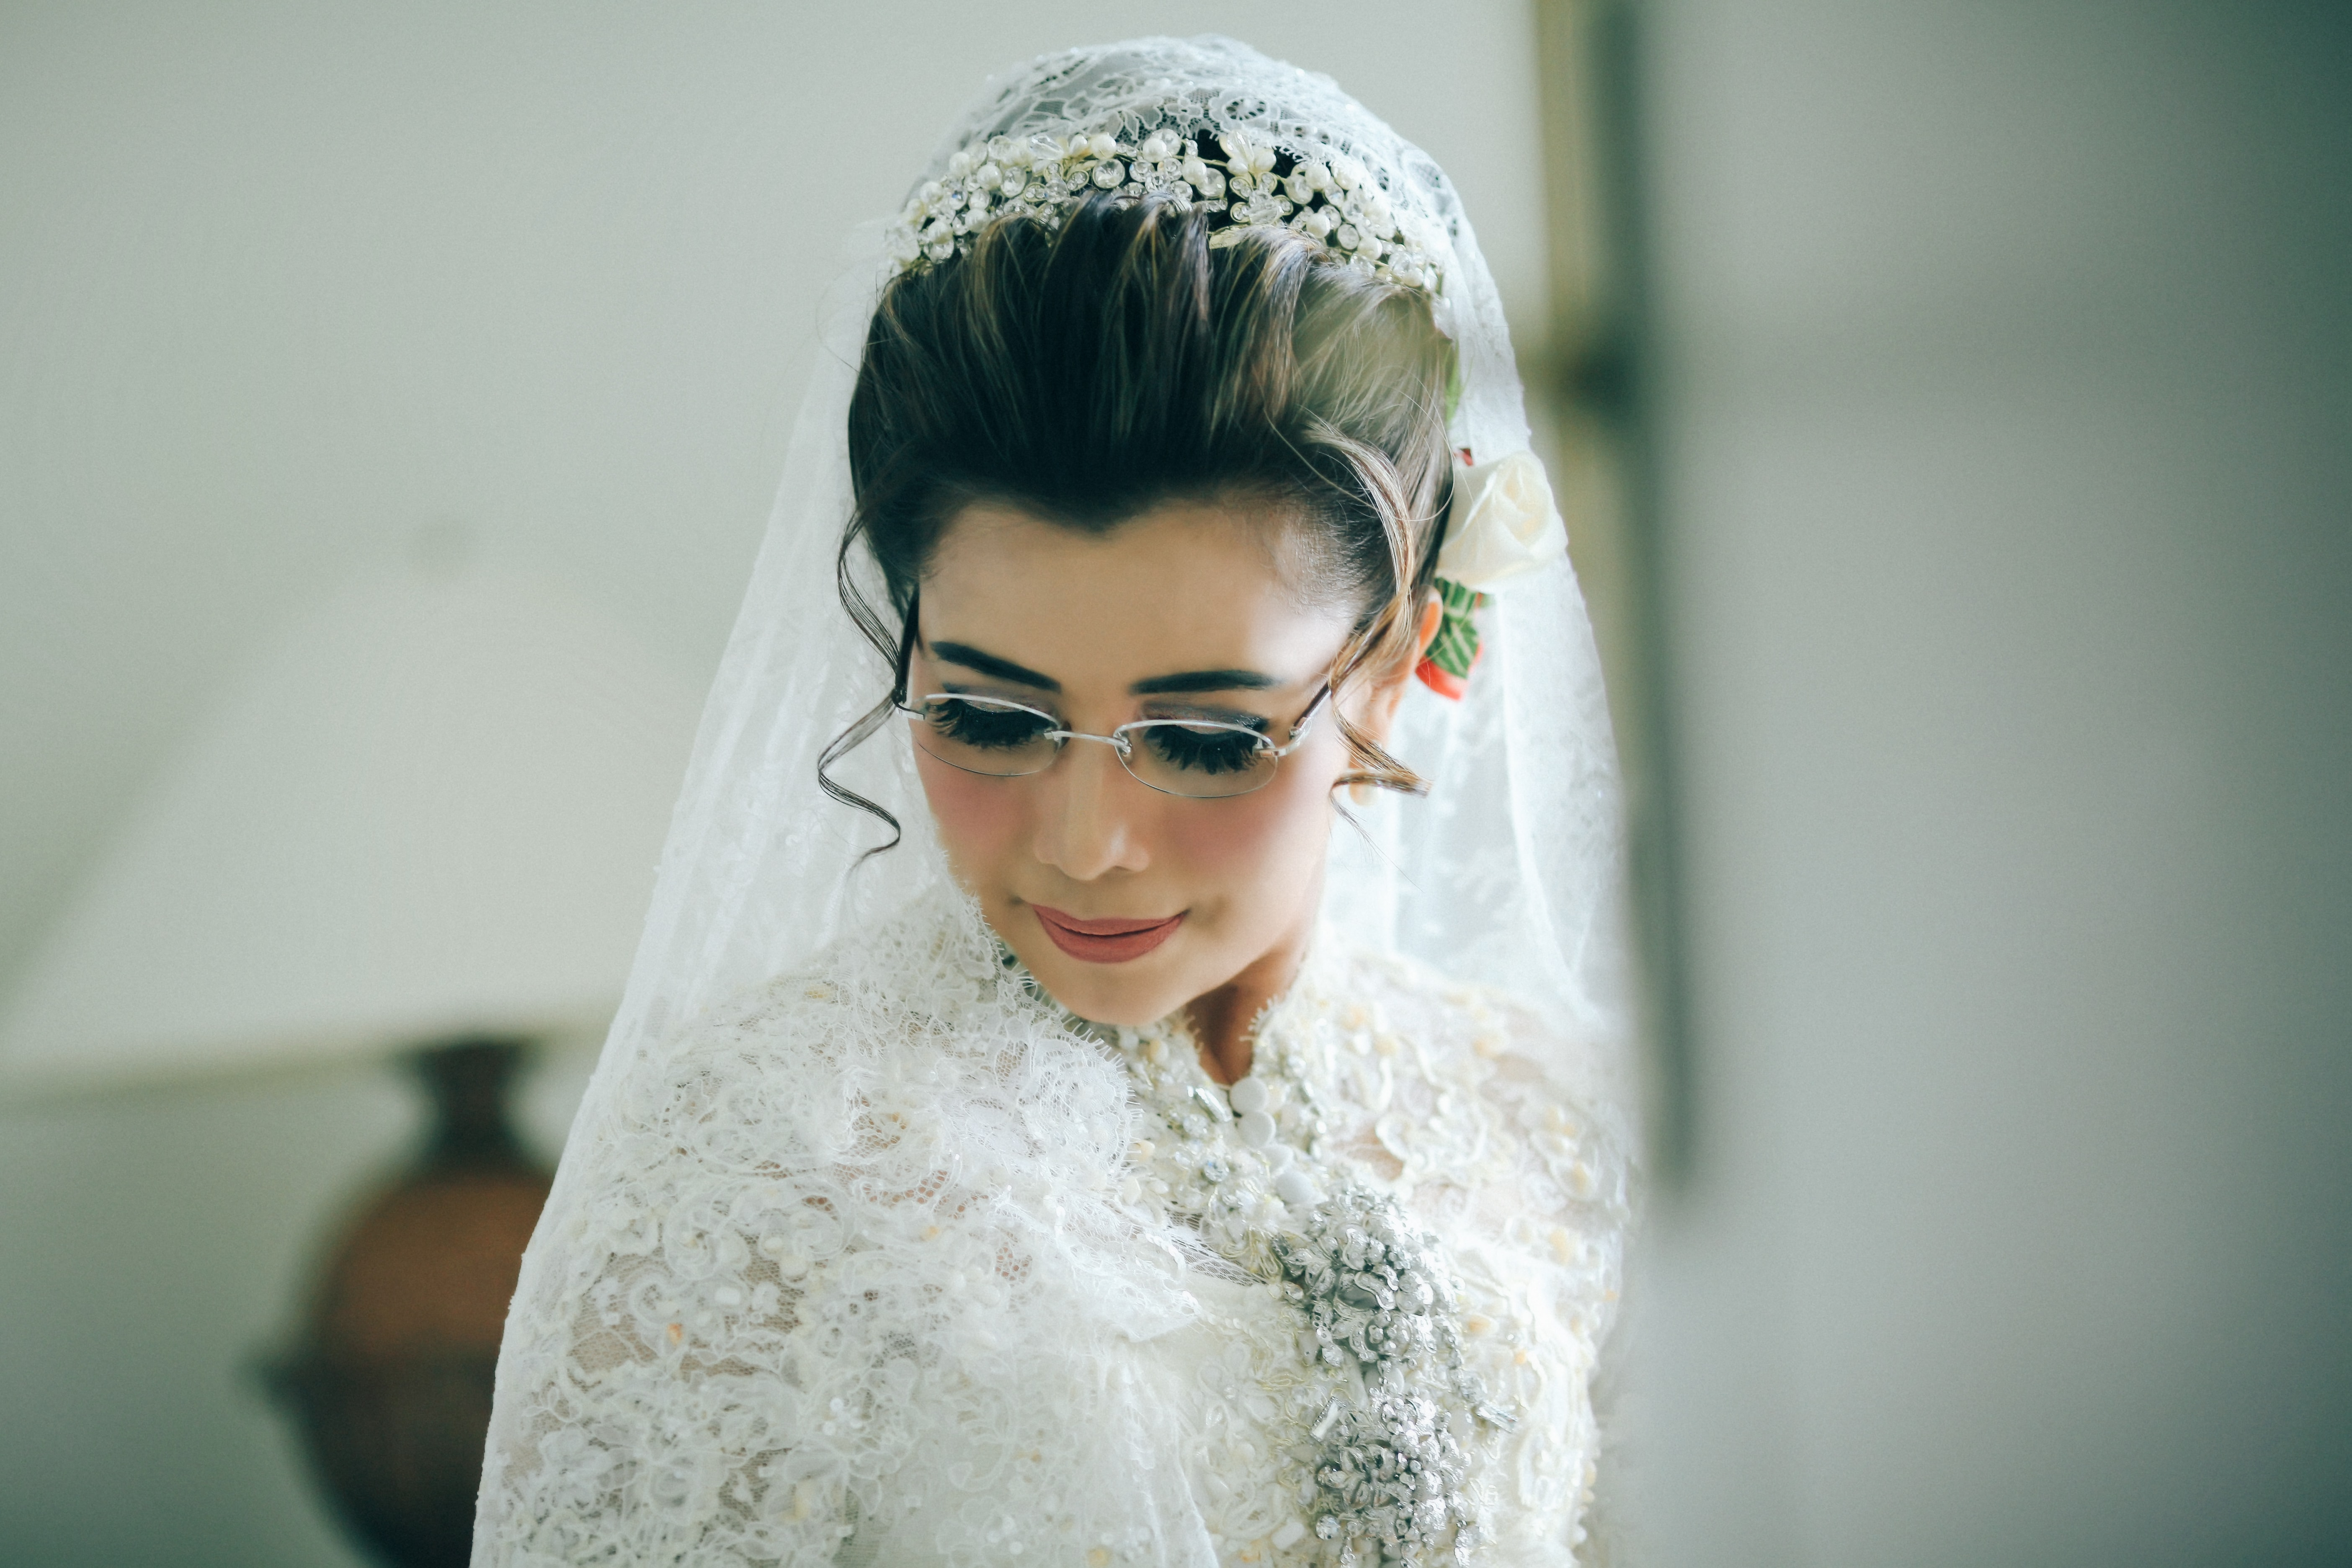 A bride in glasses and a lacy dress and veil looks downward